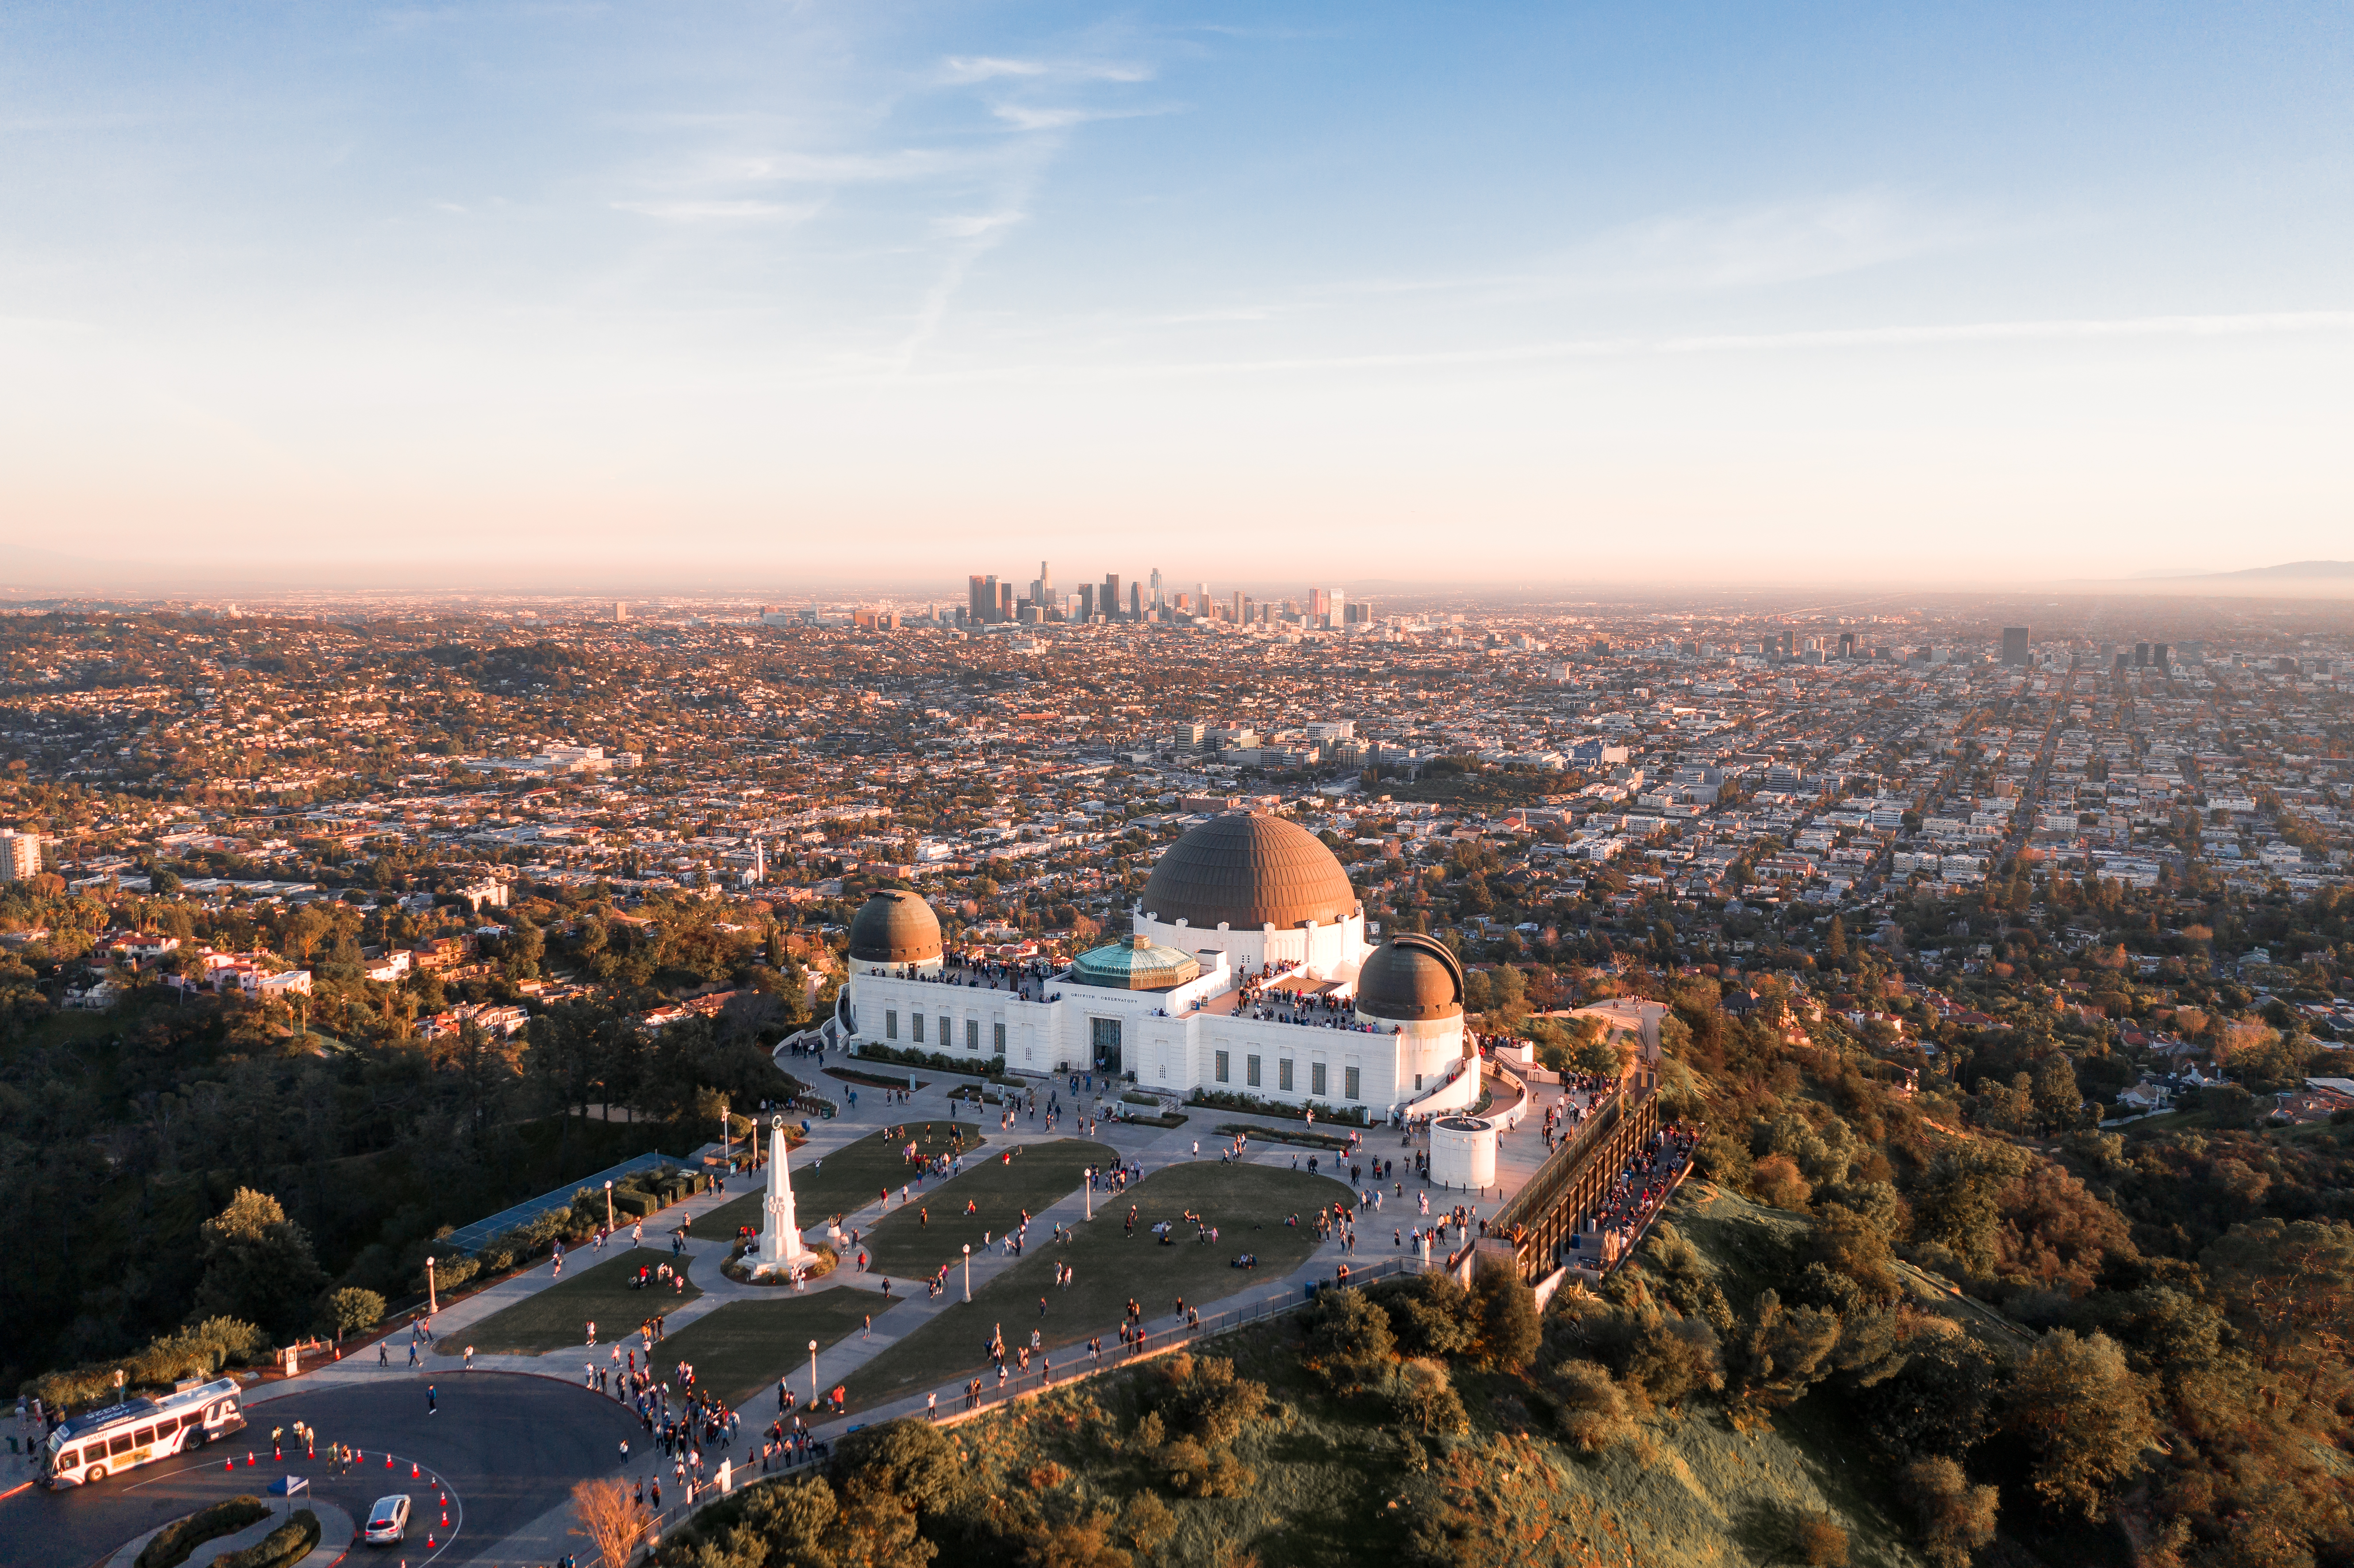 Griffith Observatory Drone